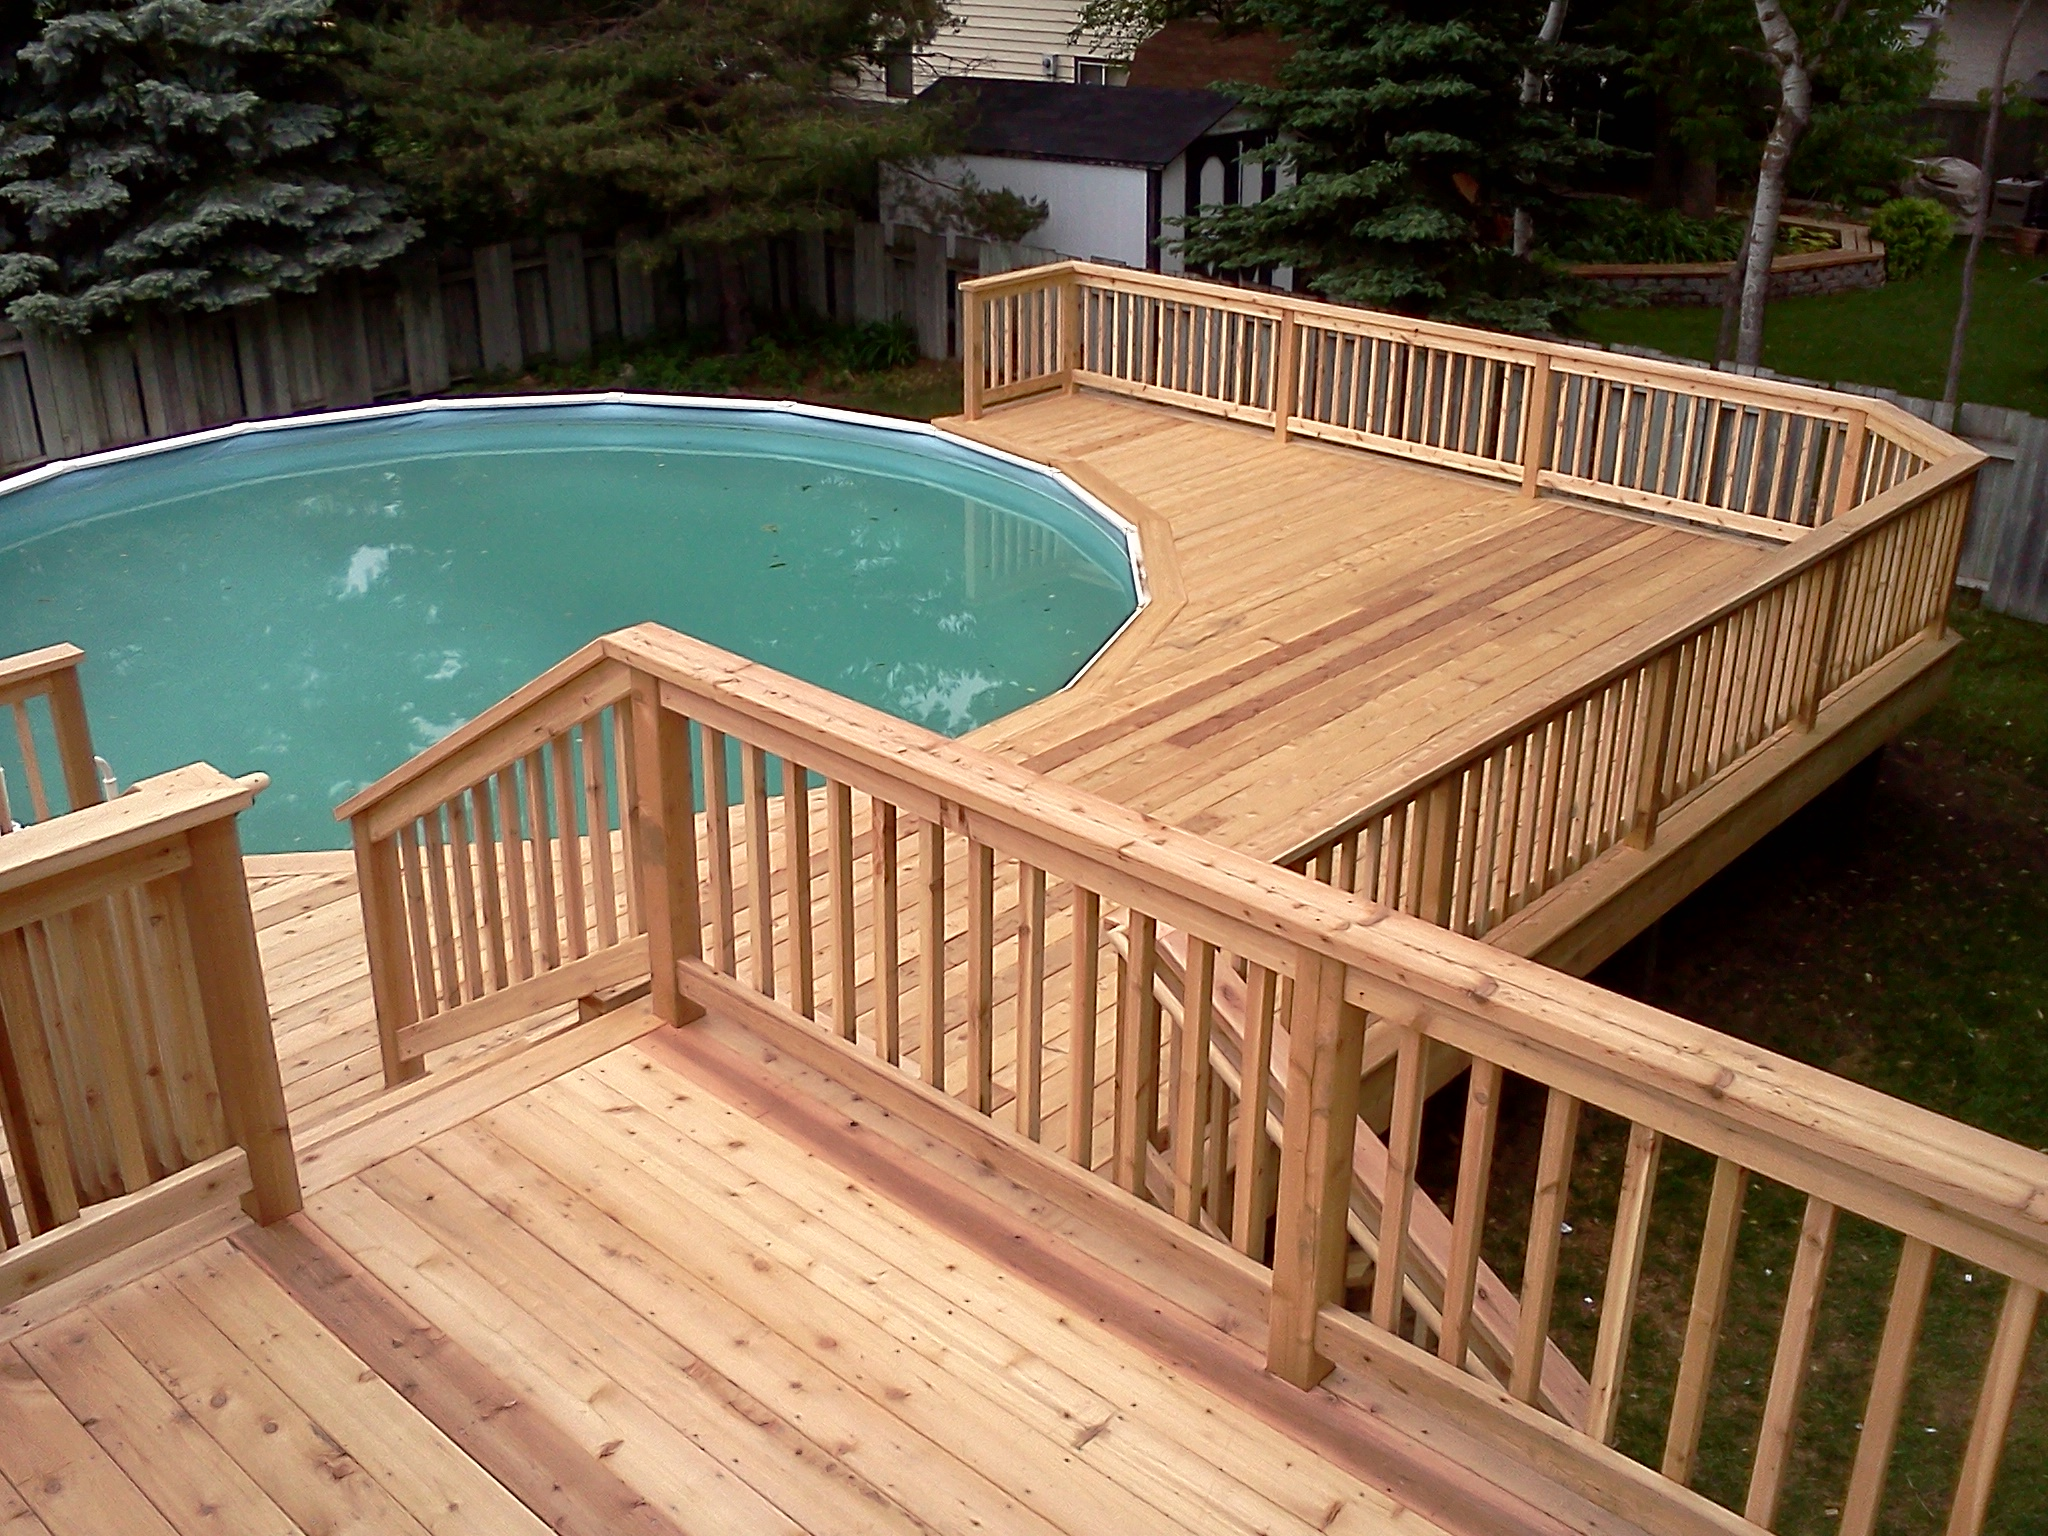 Pool deck wood example fairfax county virginia pool for Wooden pool